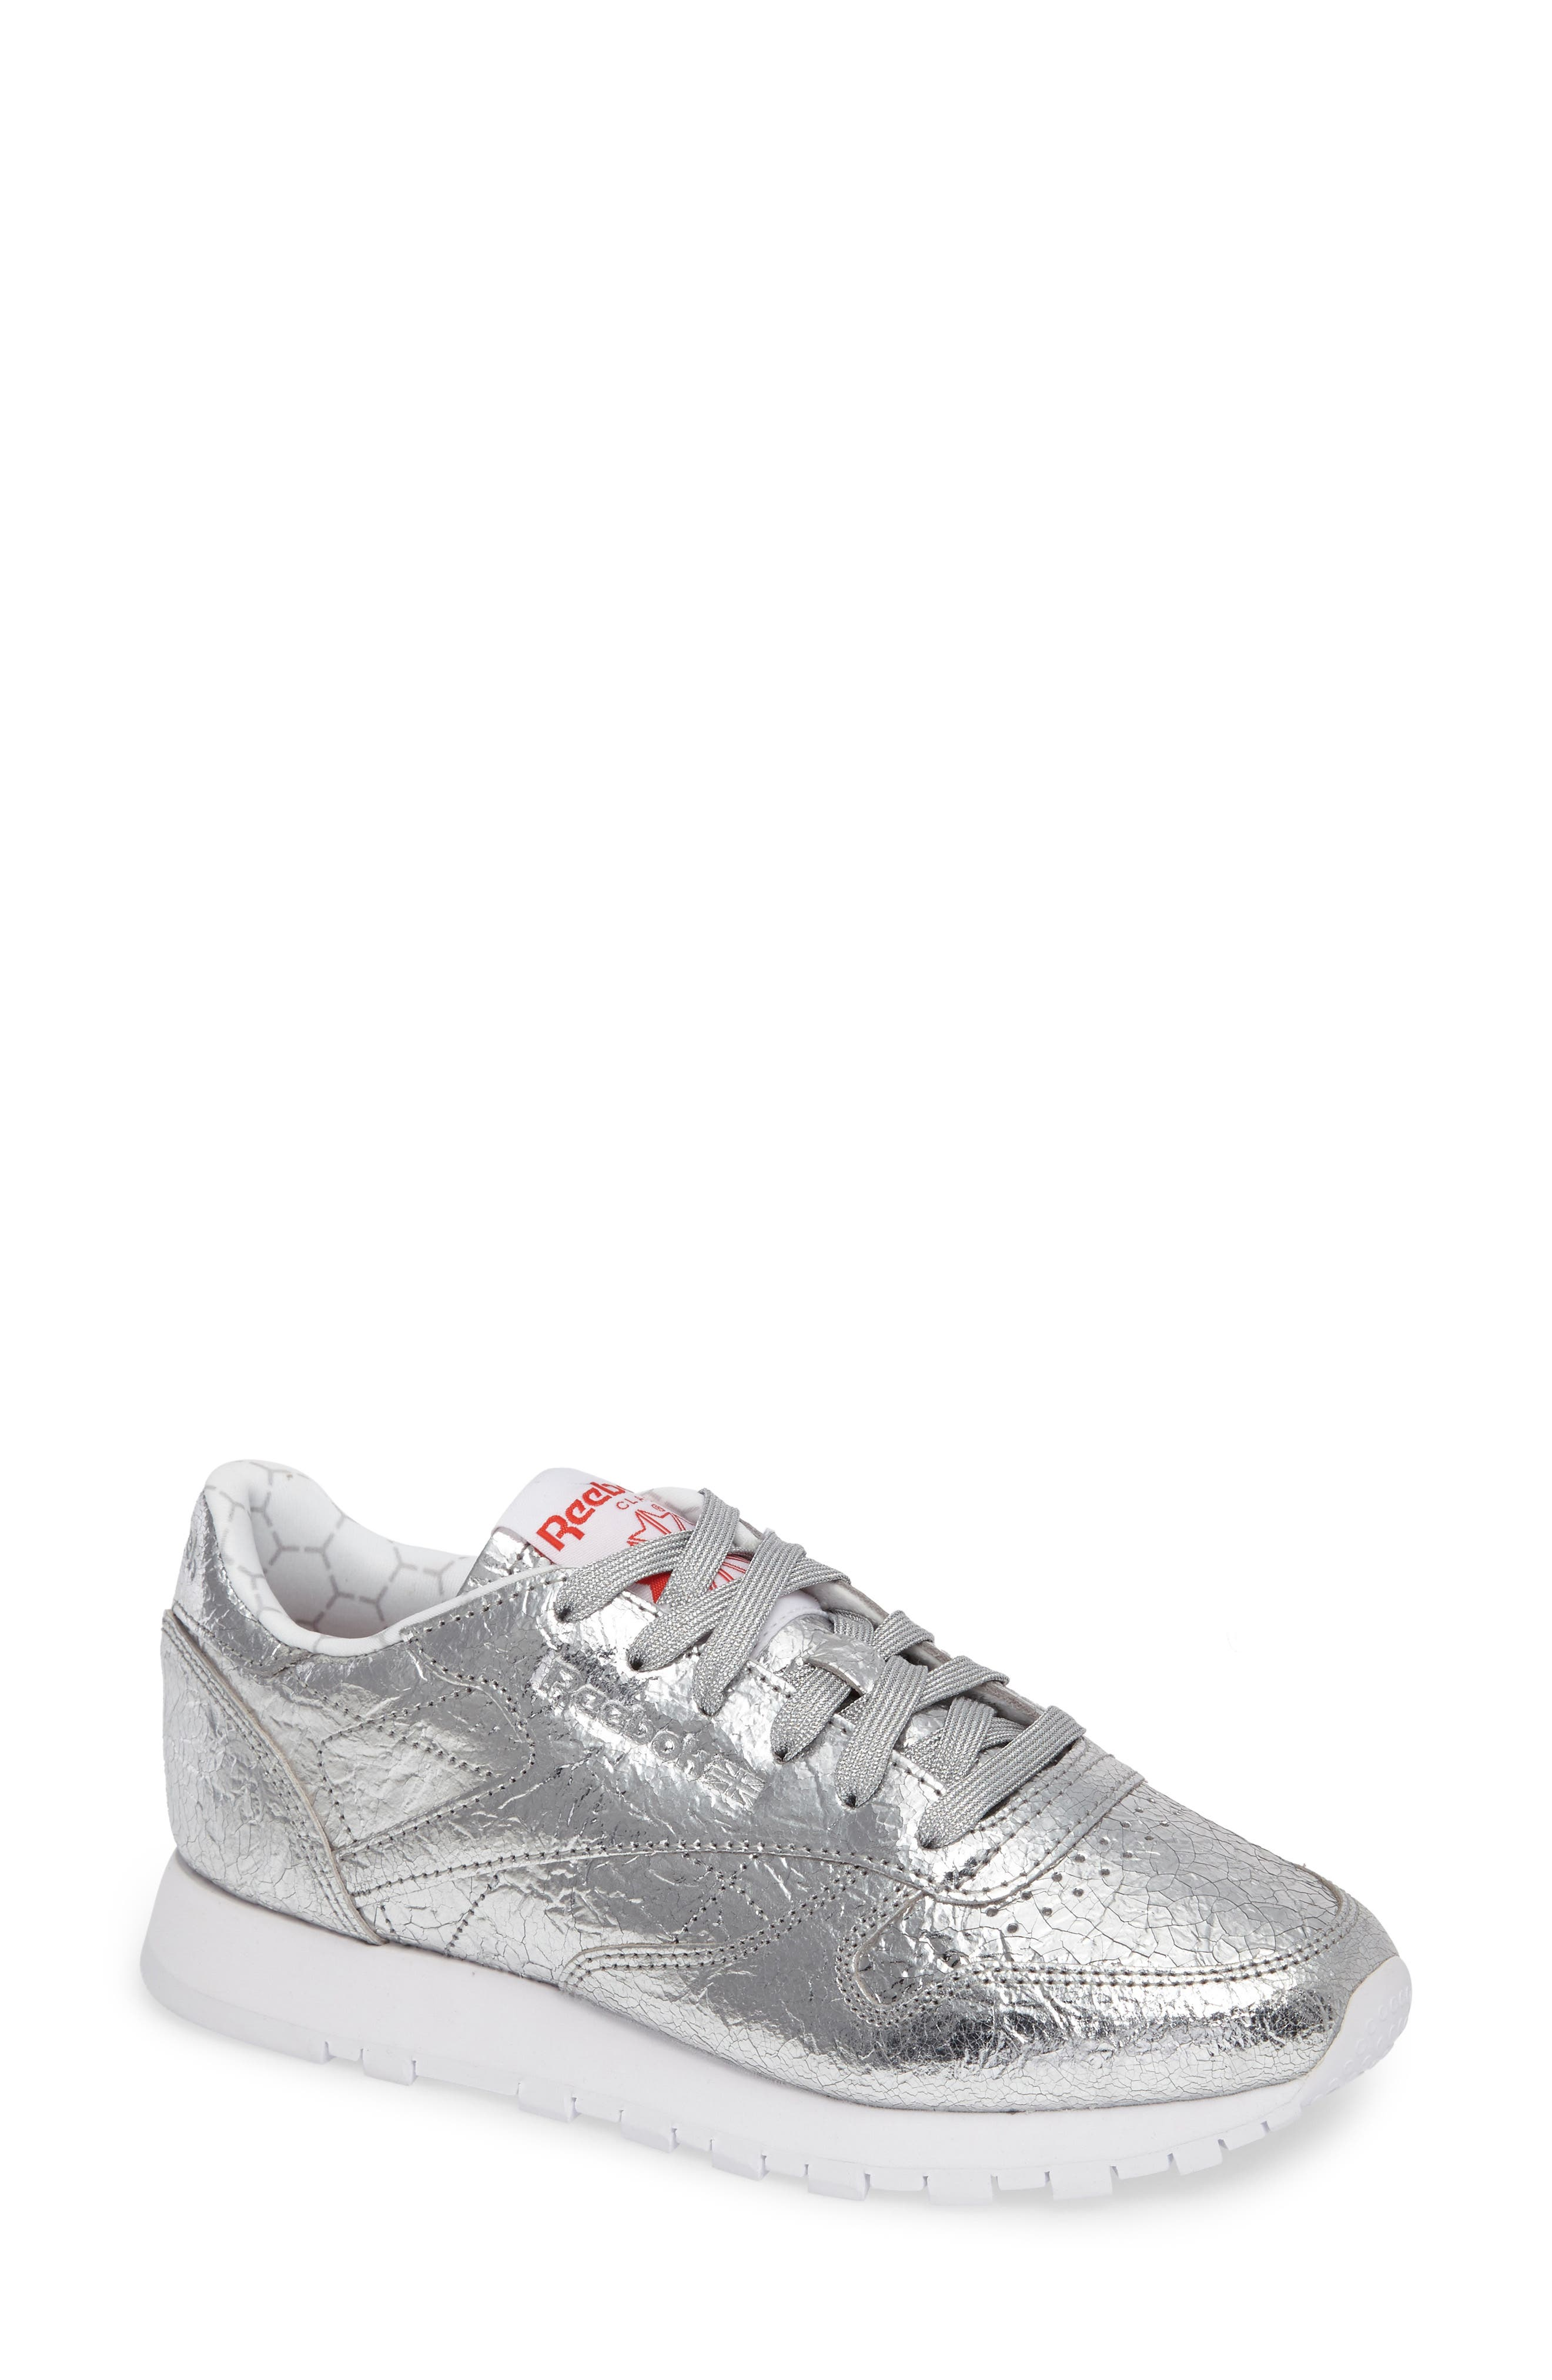 Reebok Classic Leather HD Foil Sneaker (Women)